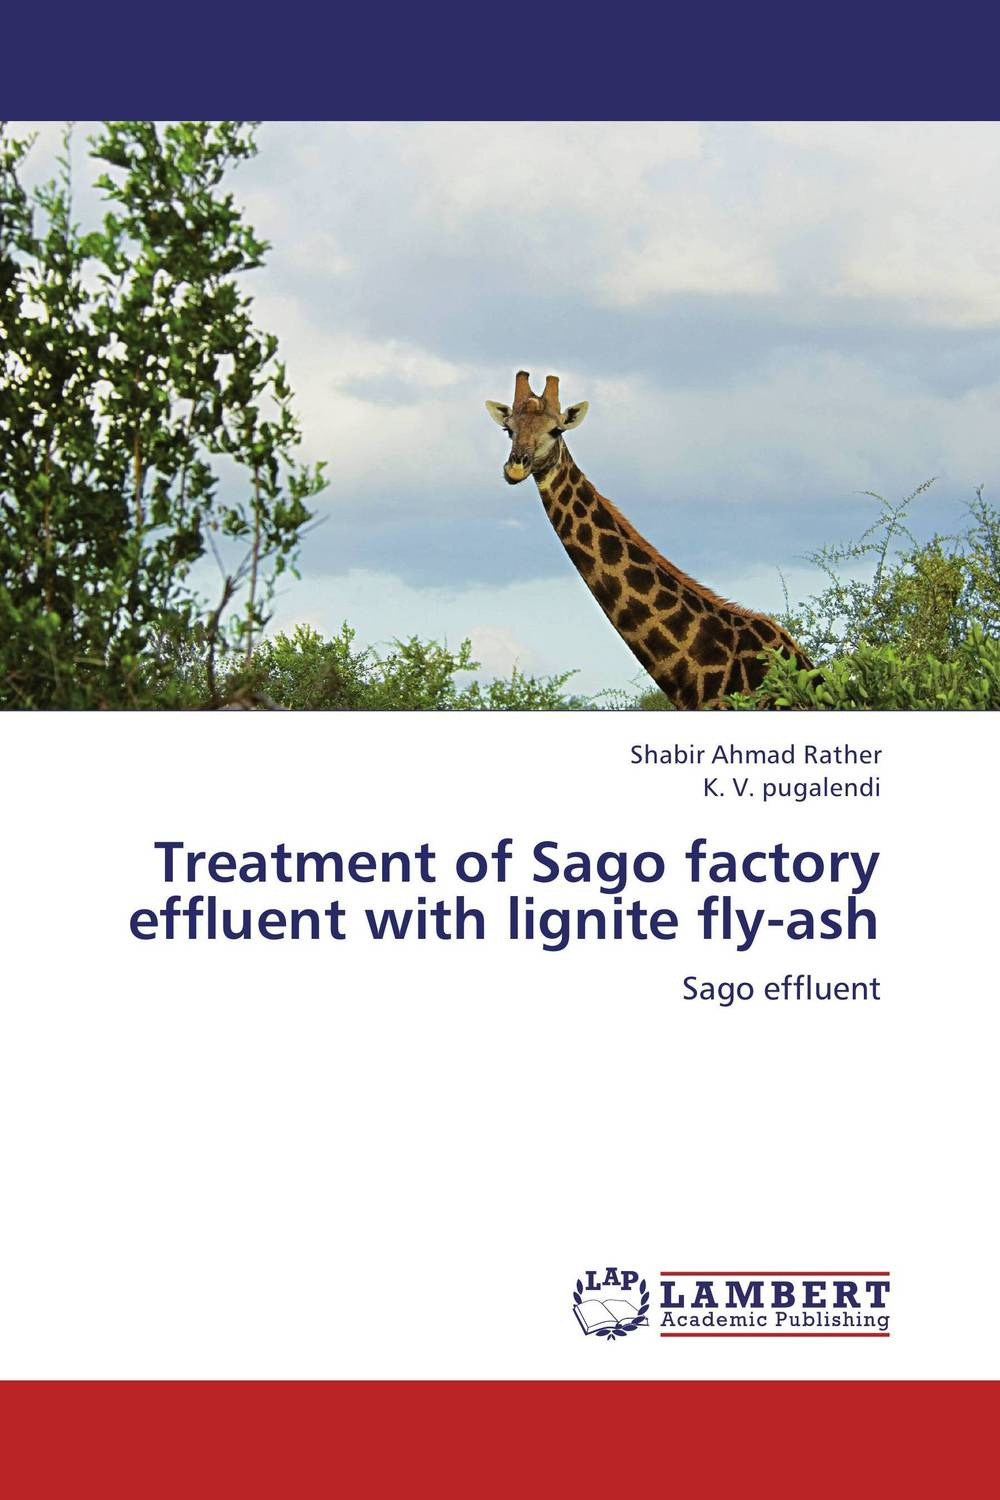 Treatment of Sago factory effluent with lignite fly-ash